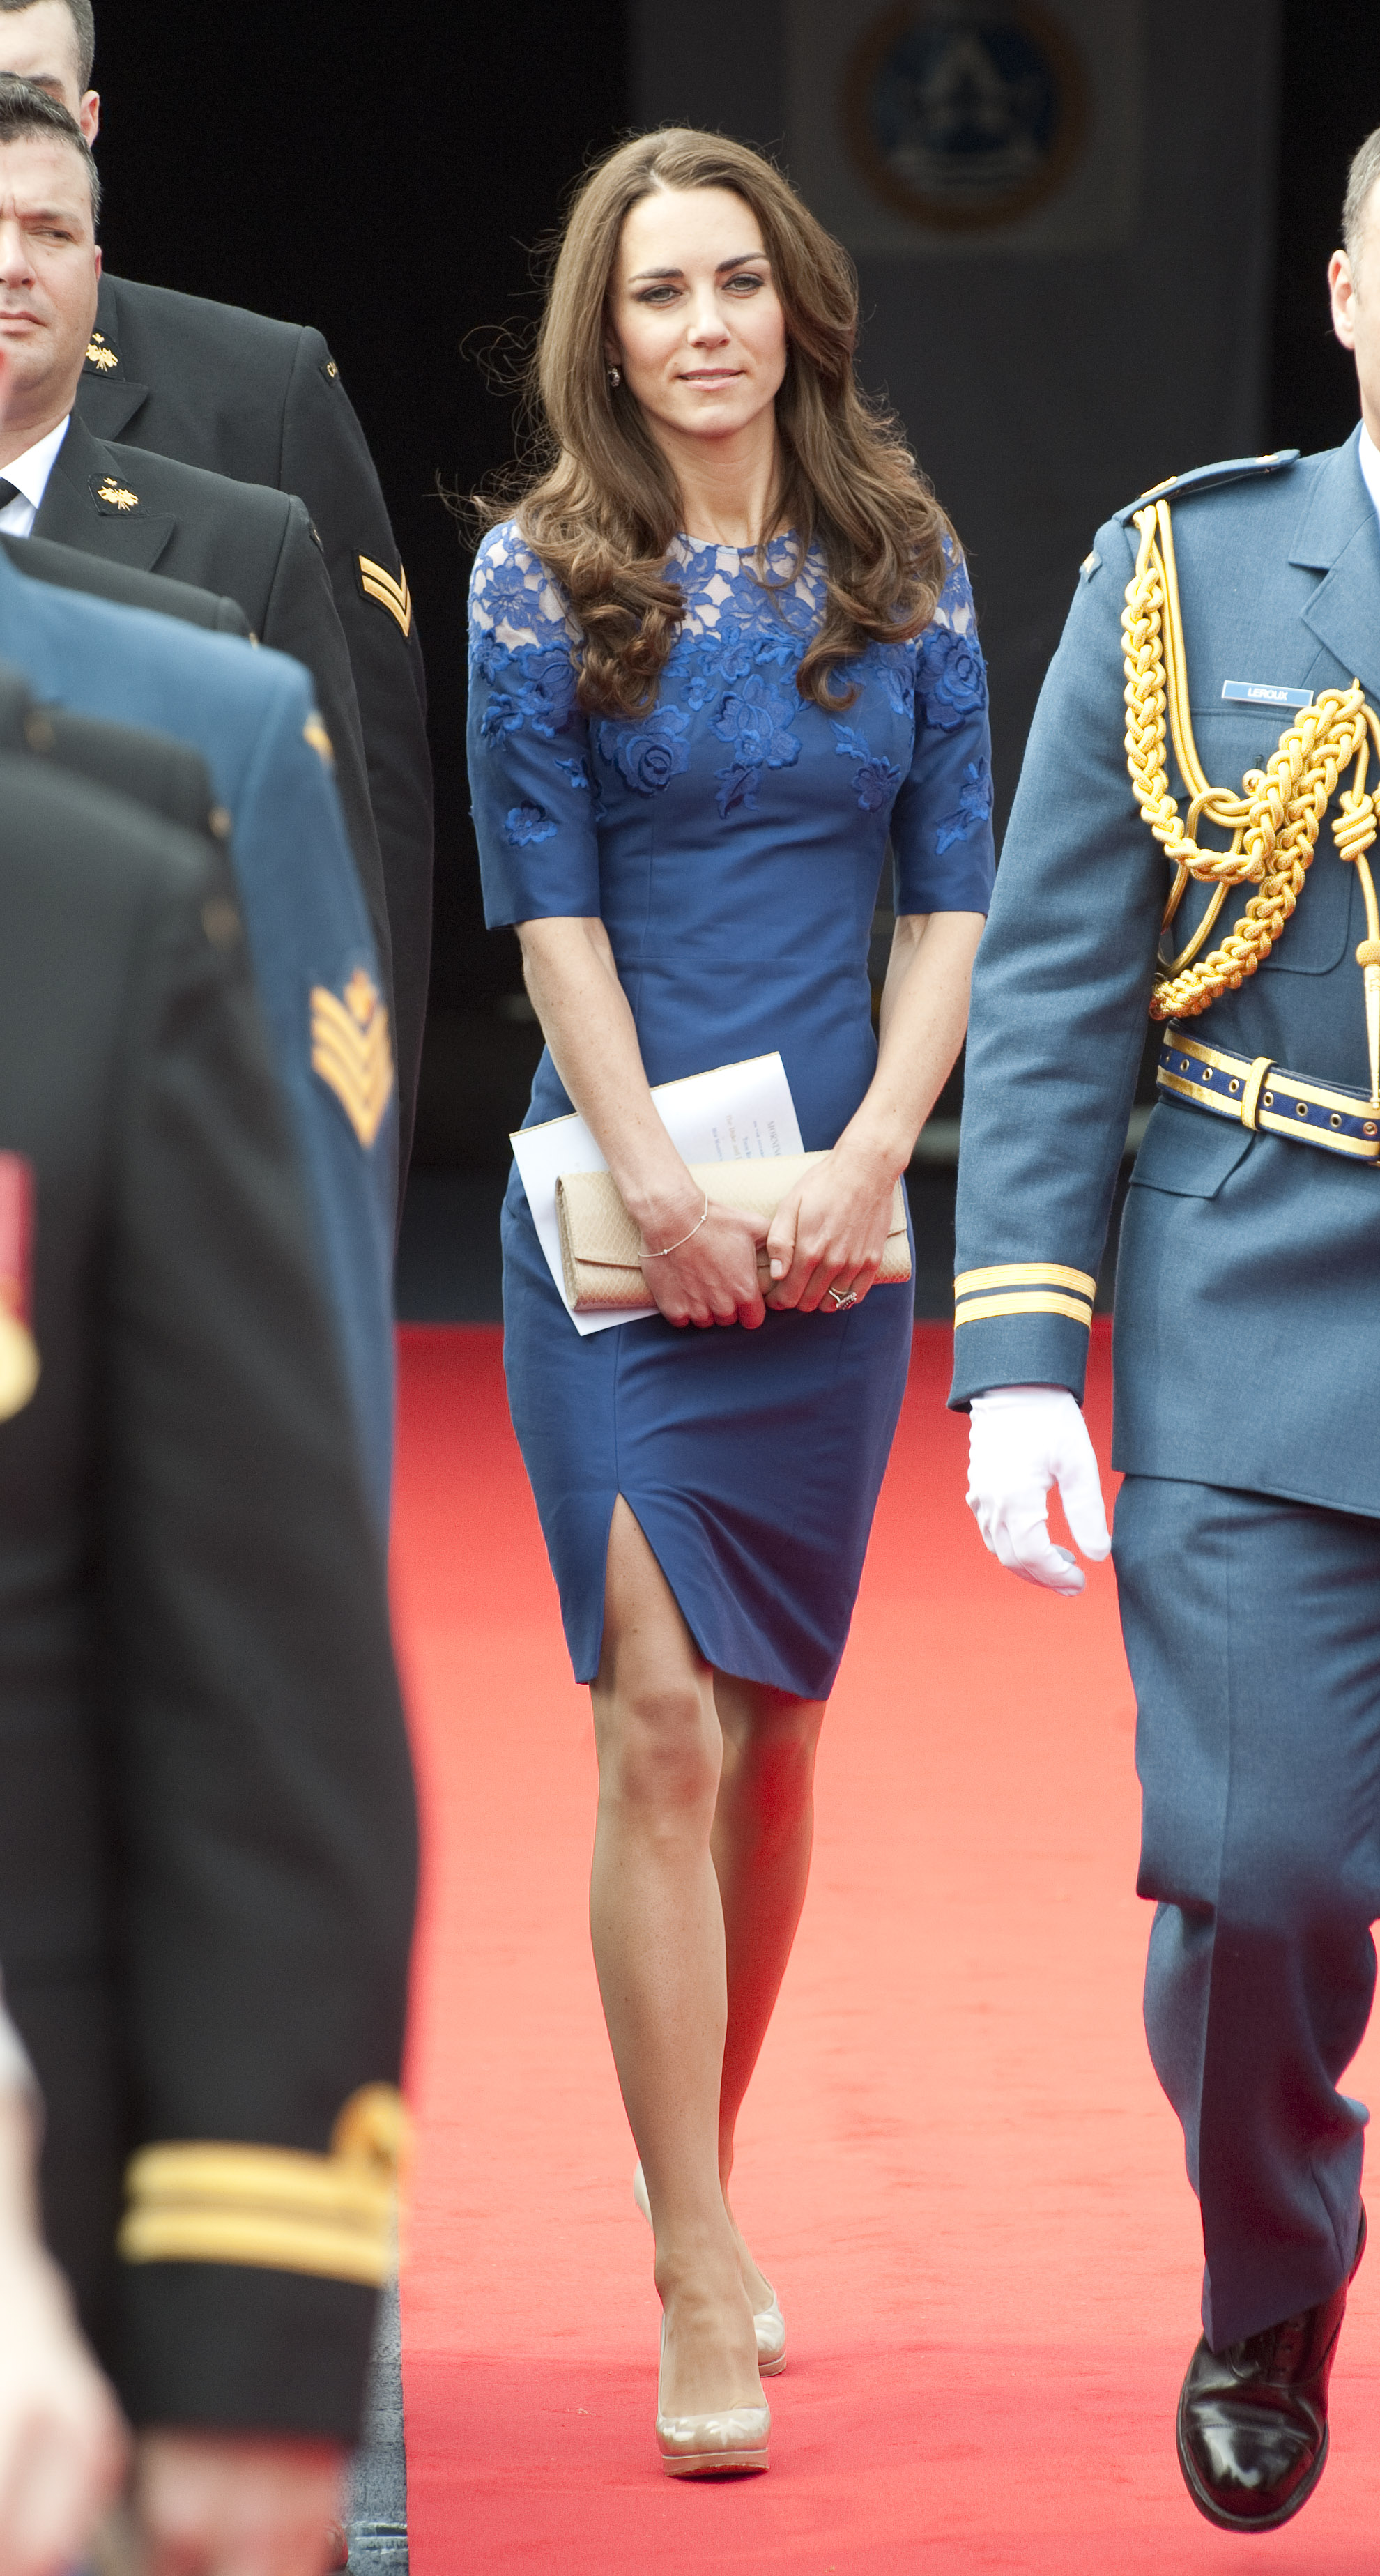 July 3rd, 2011 Attending a morning ceremony aboard the HMCS Montreal in Champlain Harbour in Quebec, Canada.   Kate pairs her Erdem Jacquenta dress with neutral LK Bennet pumps.